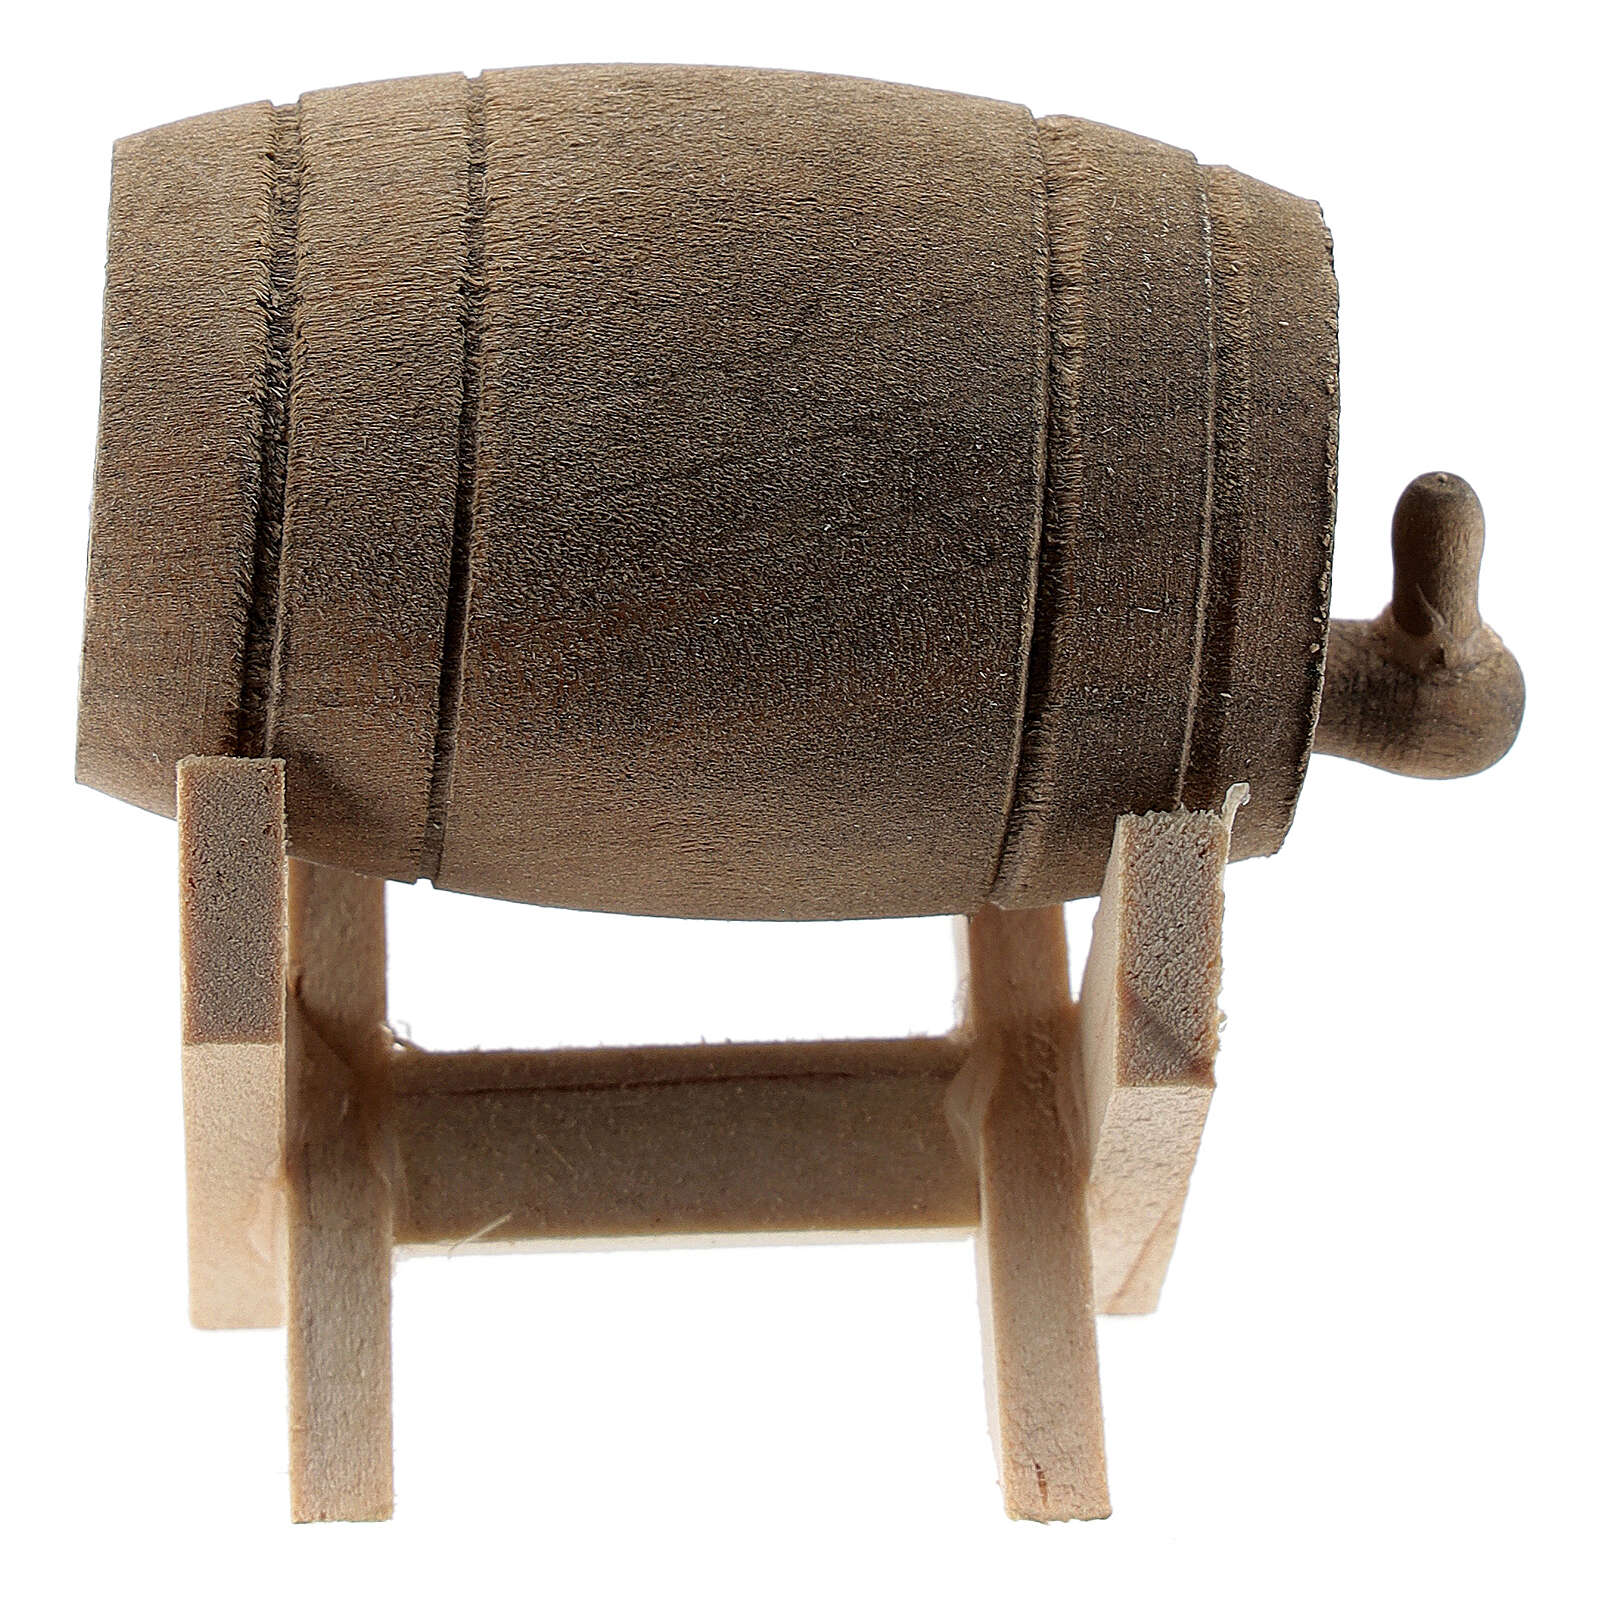 Wood cask with stand for Nativity Scene with 6-10 cm figurines 4